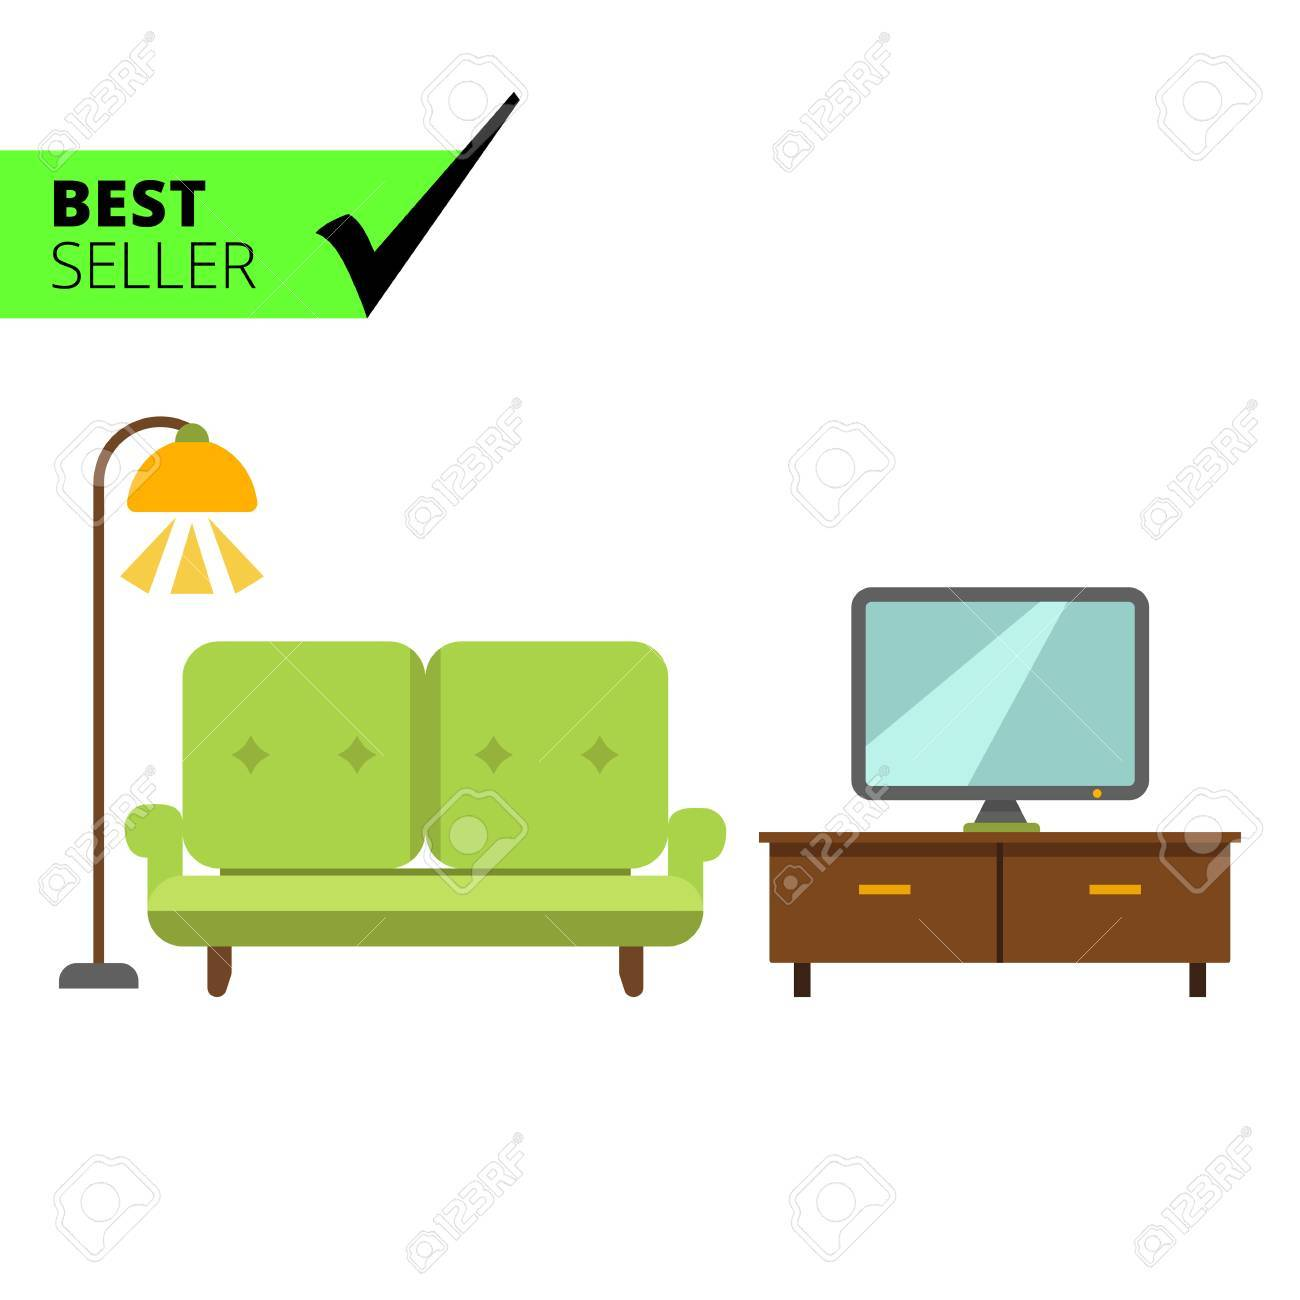 Living Room Sets Including Tv icon of living room interior including couch, tv stand, tv-set